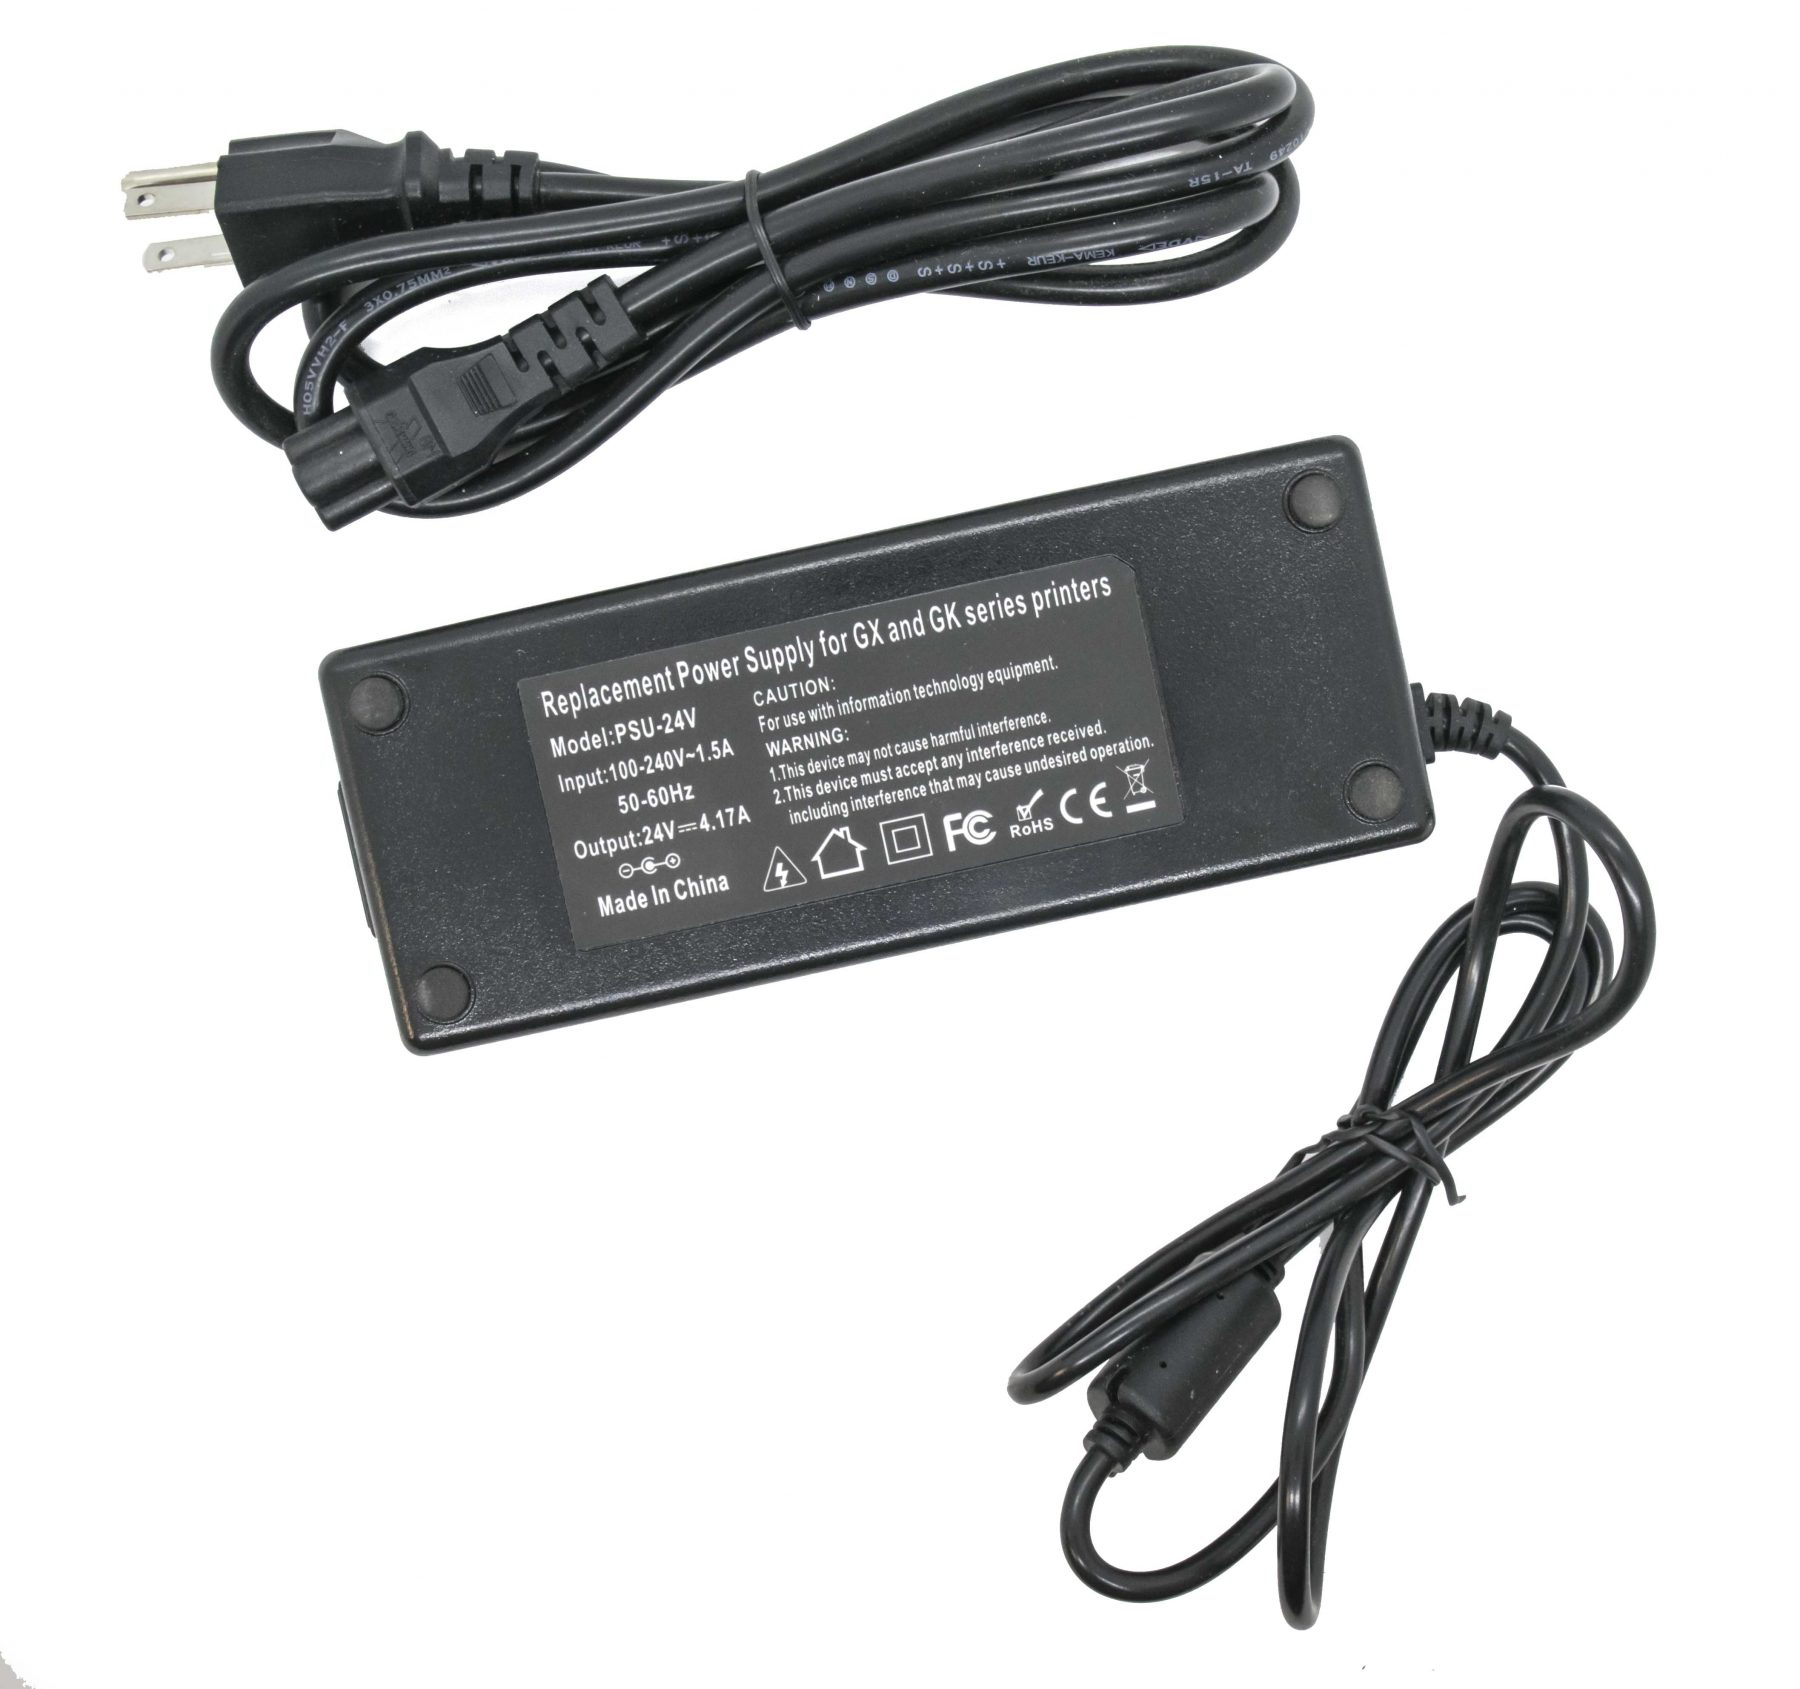 New Zebra GK420d GX420d GX420t GK420t AC Adapter Power Supply 24V Compatible